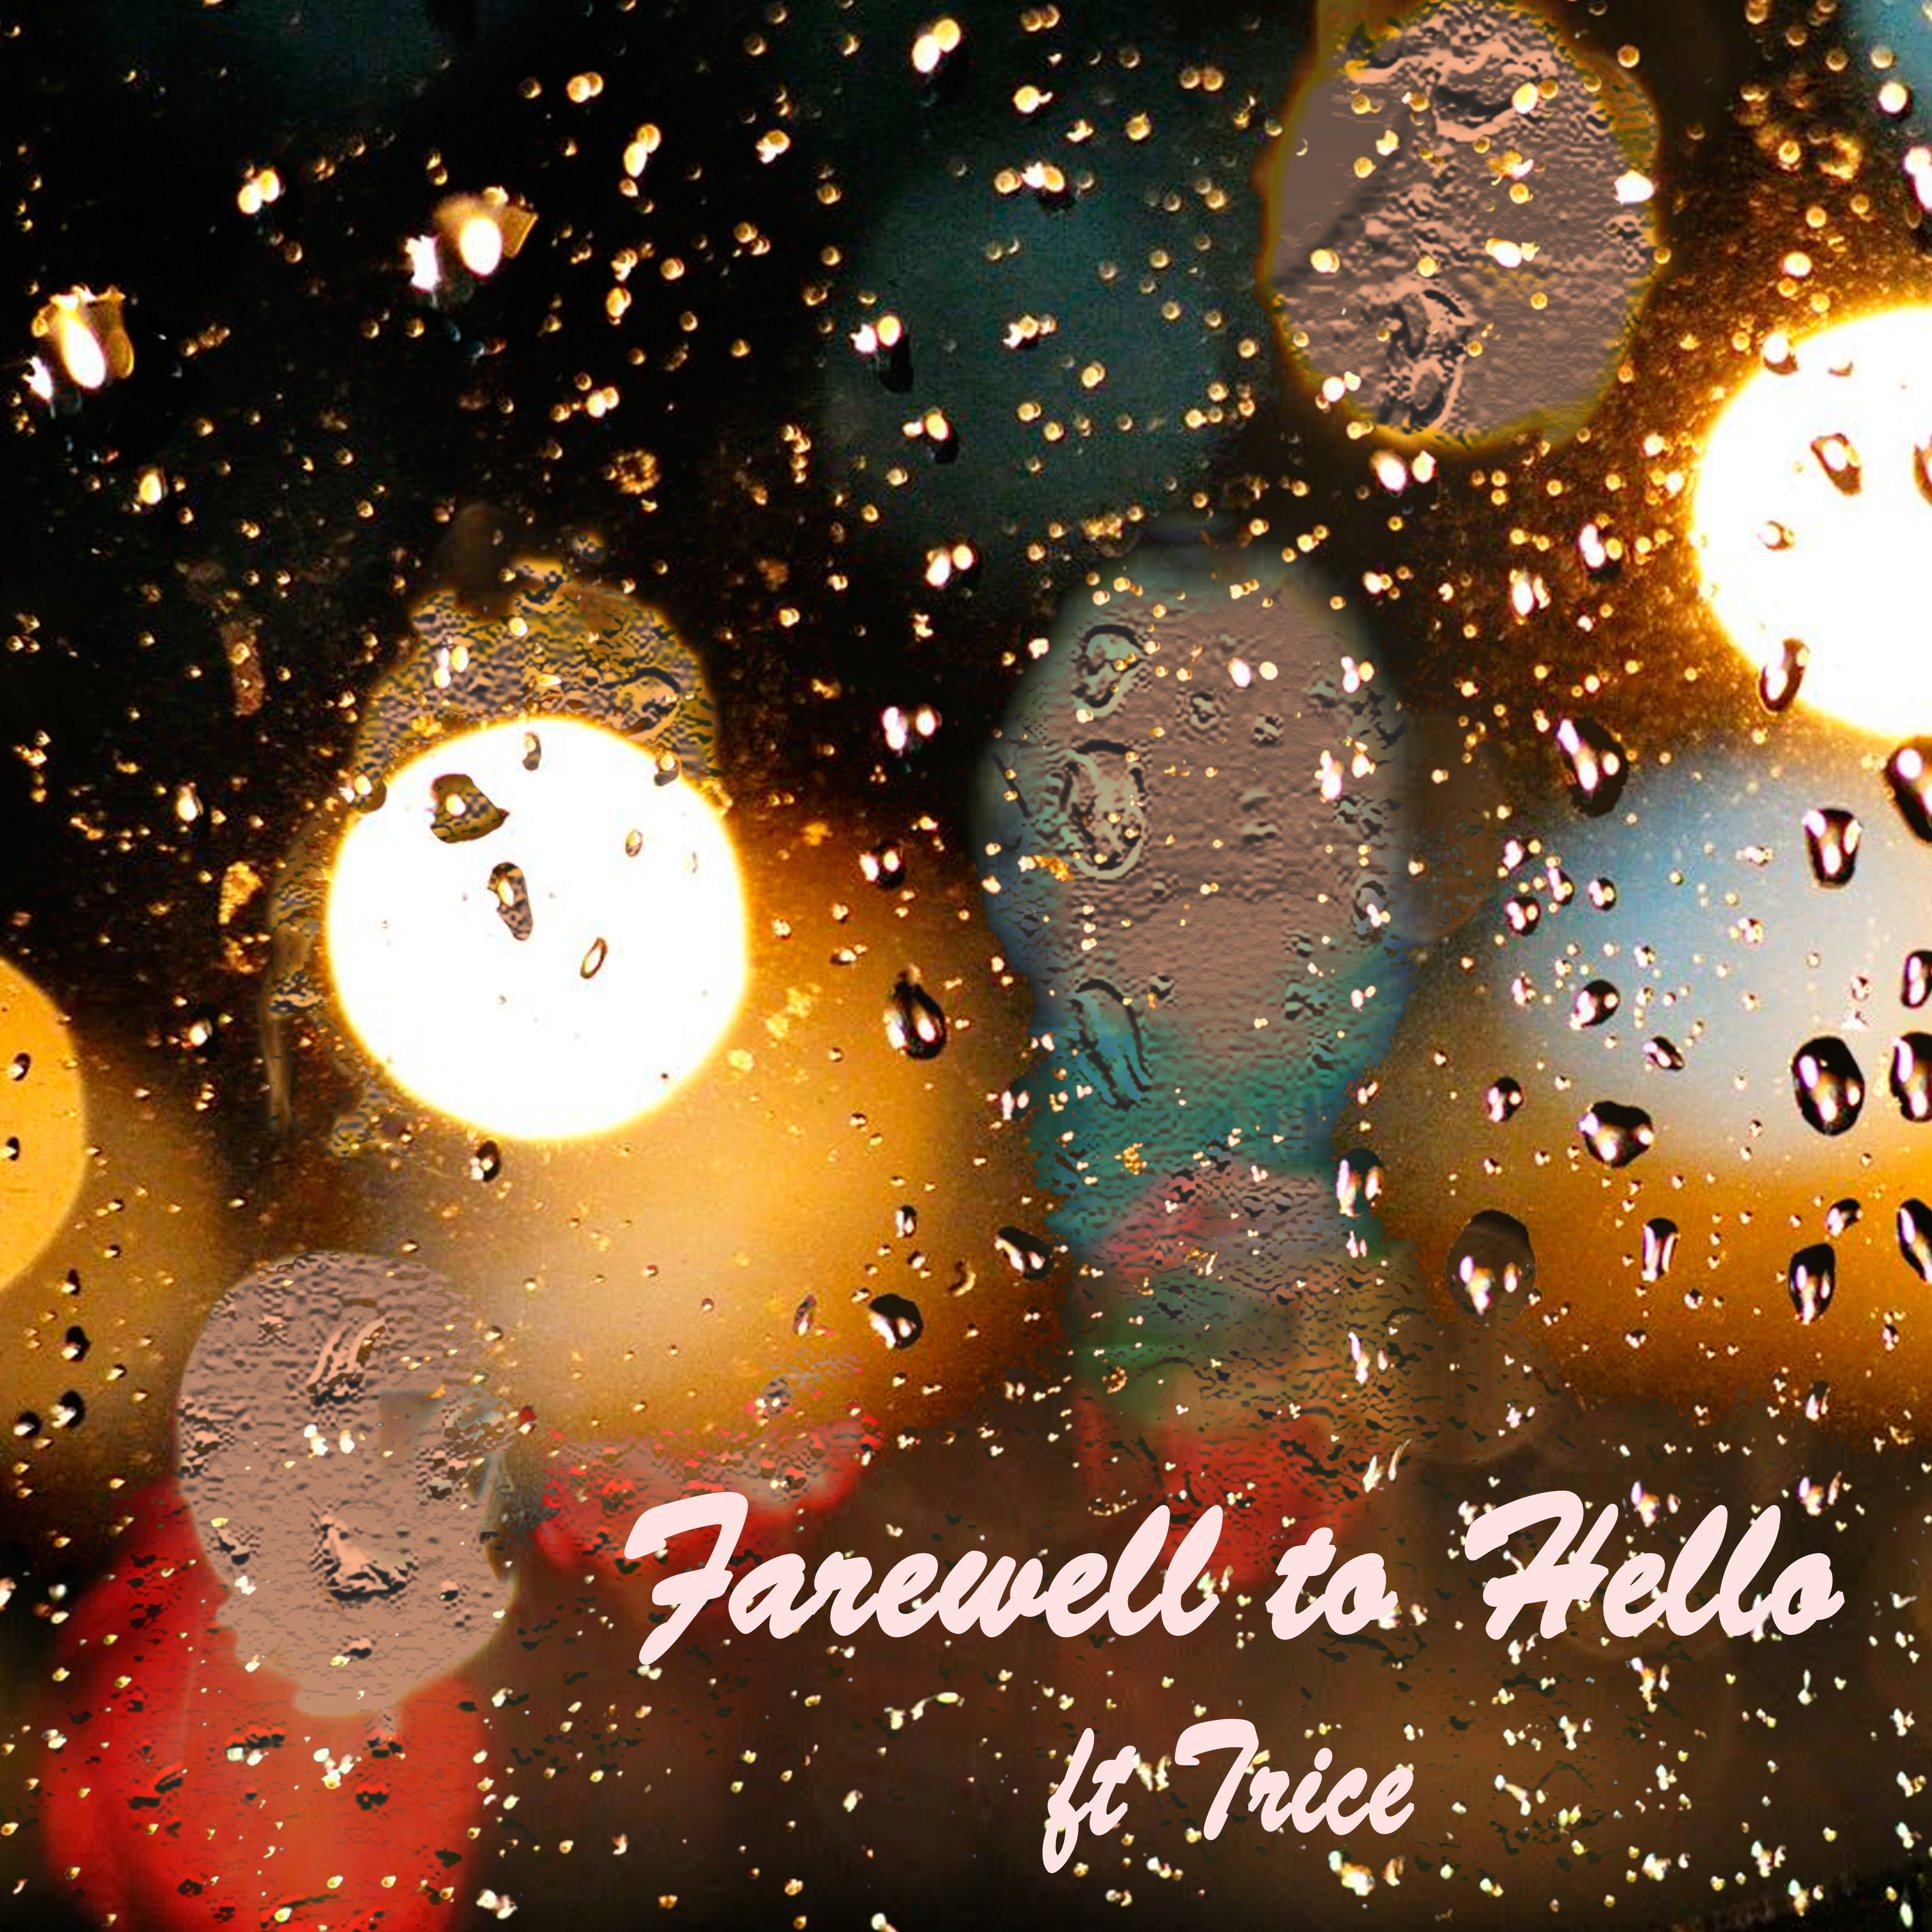 Farewell to Hello (ft. Trice)